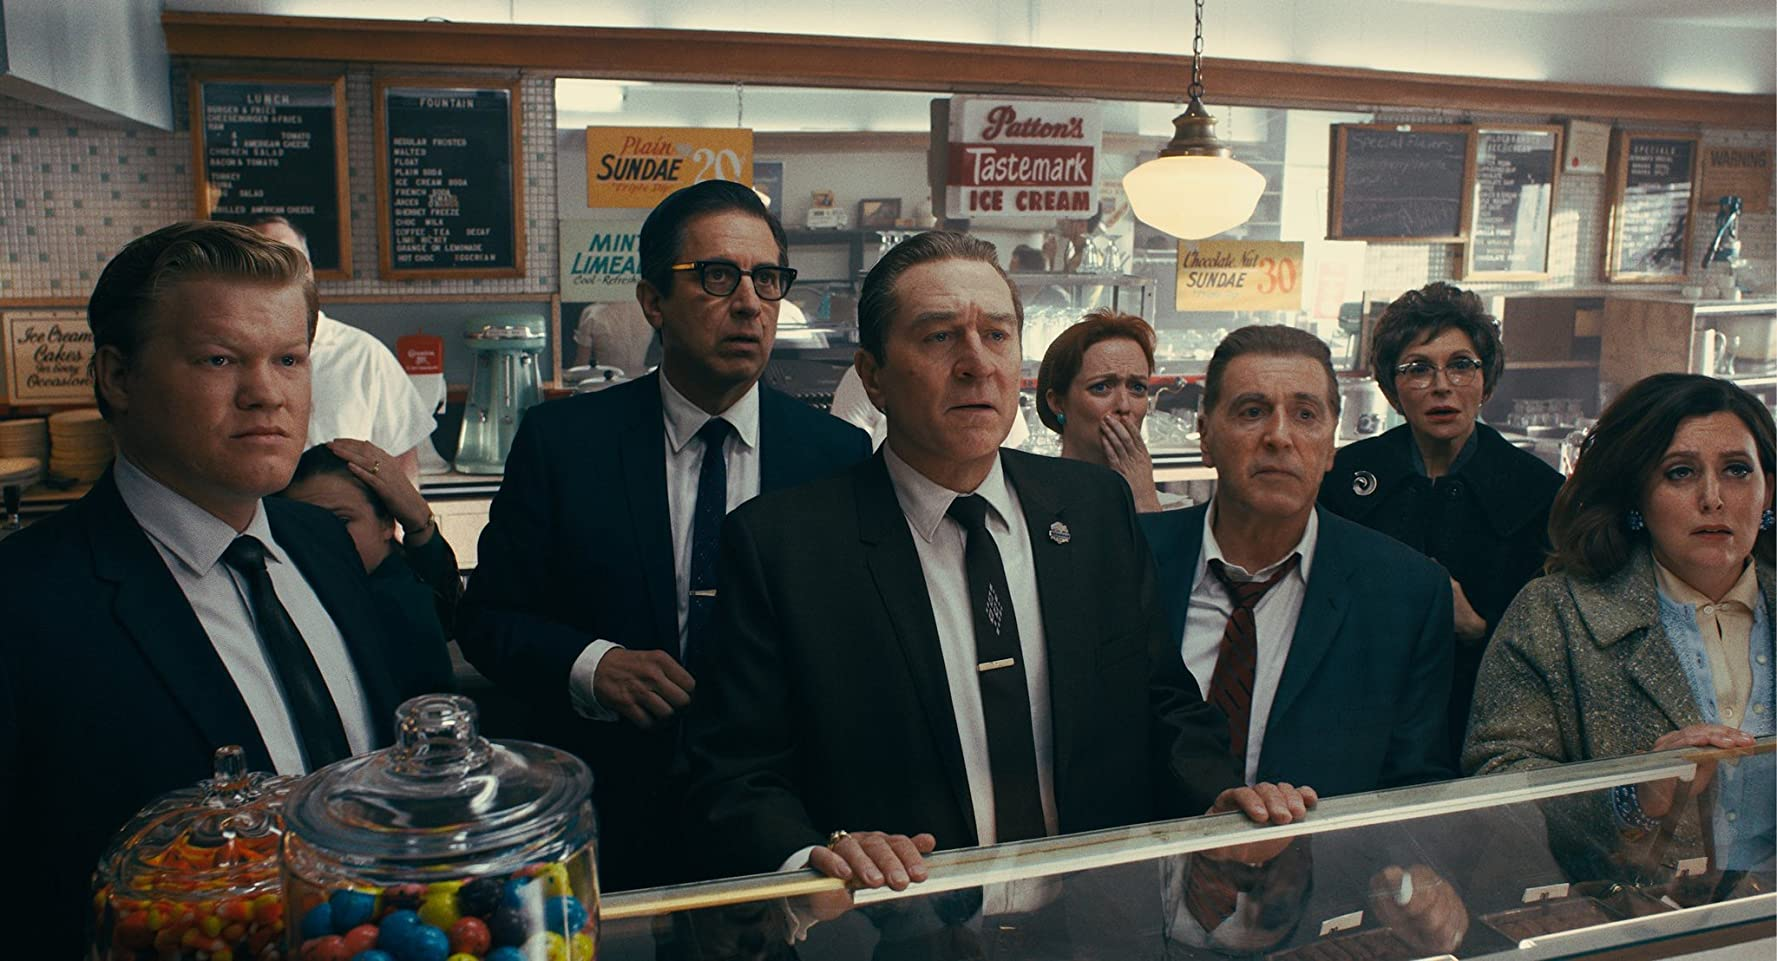 Robert De Niro, Al Pacino, Ray Romano, Jesse Plemons, and Kelley Rae O'Donnell in The Irishman (2019)